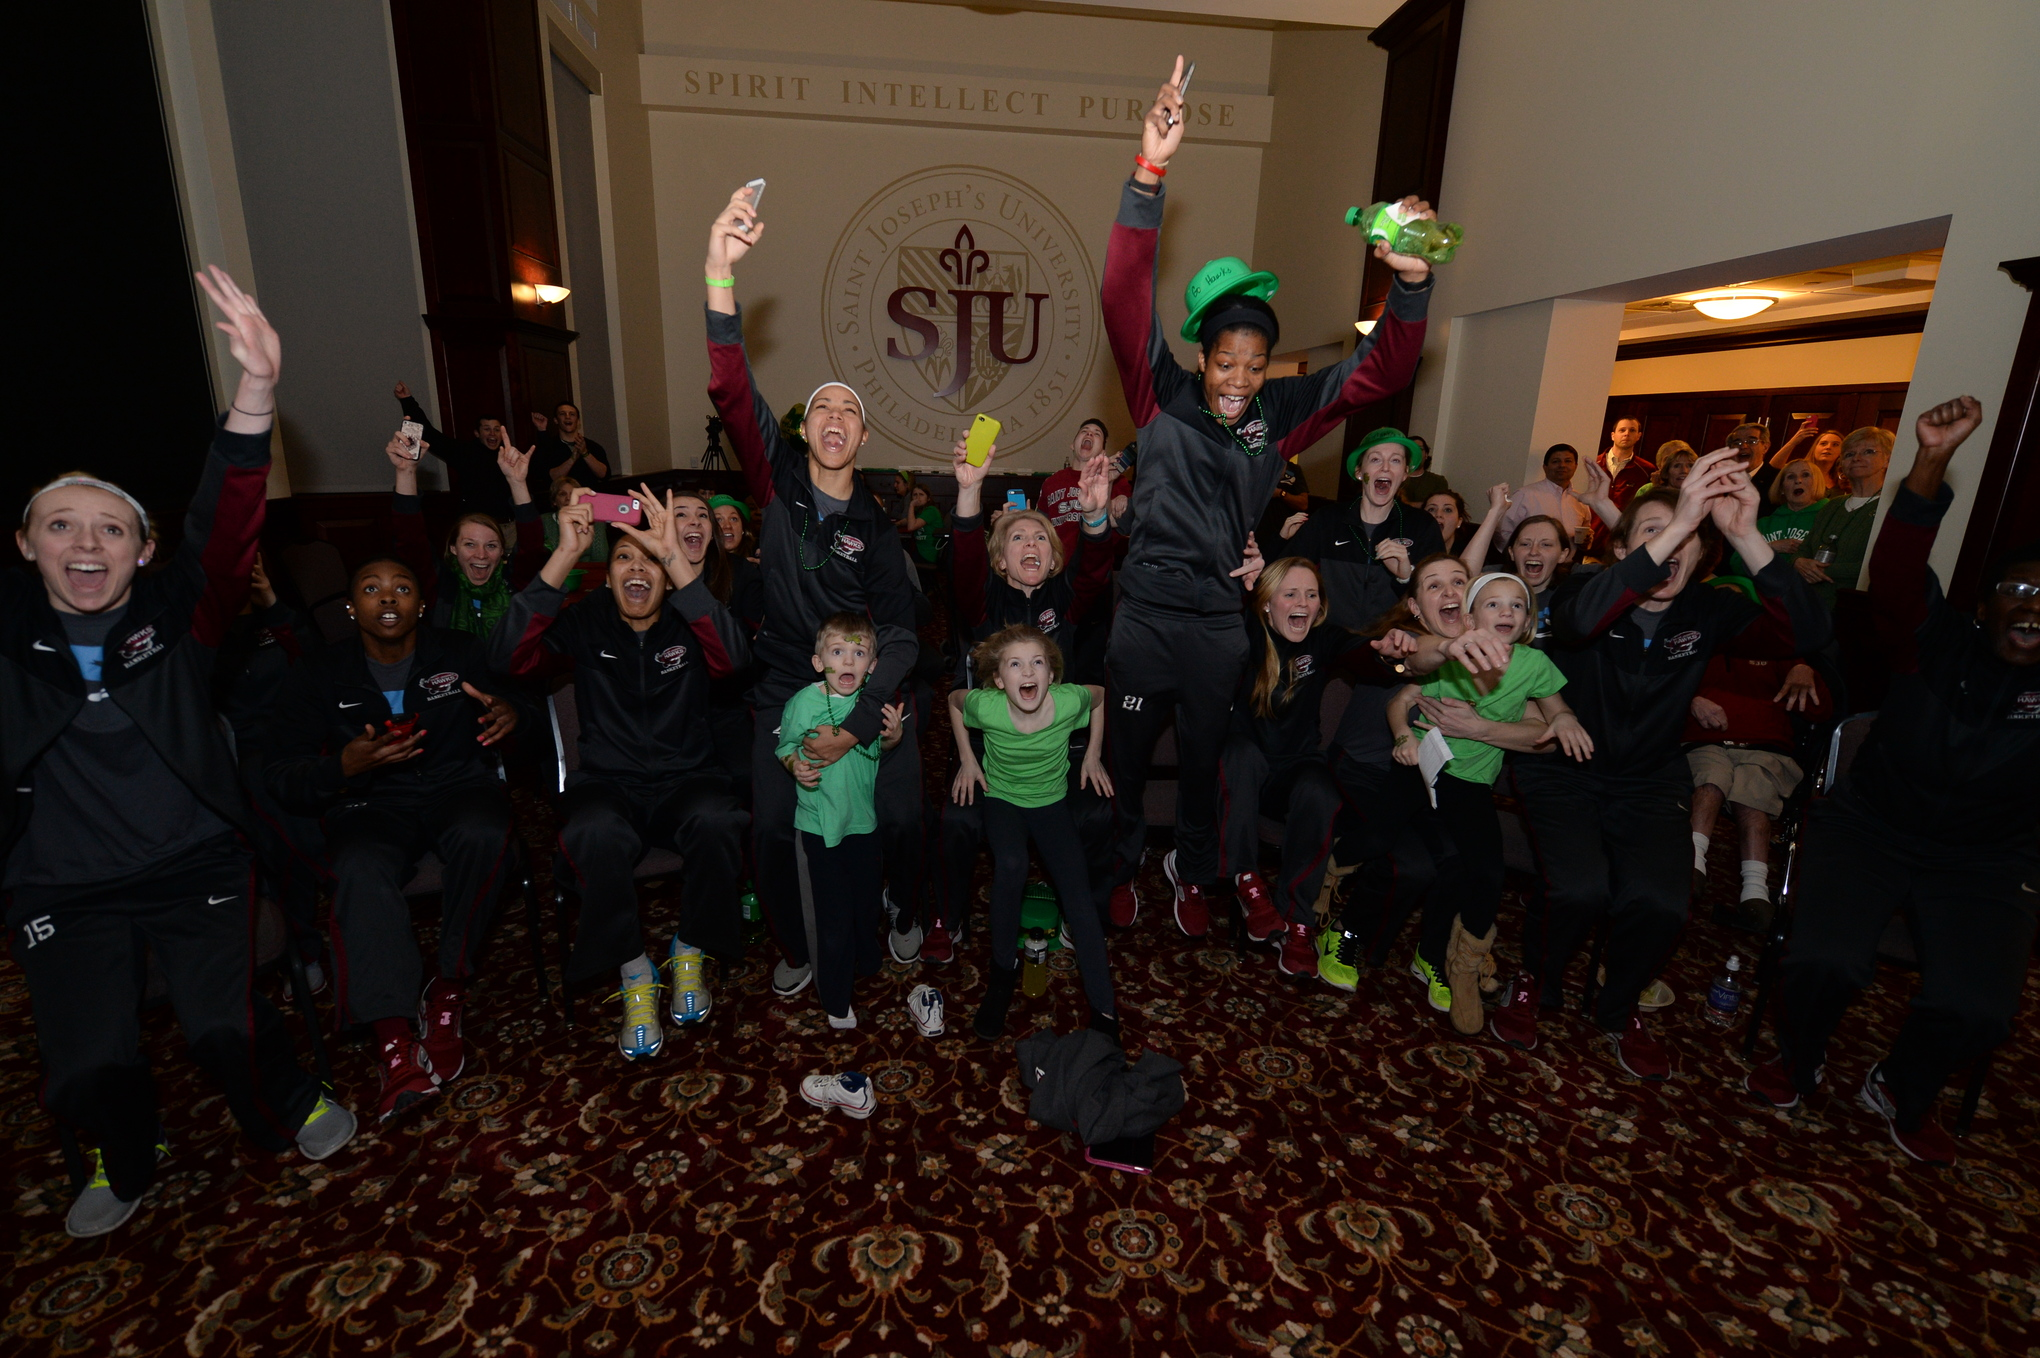 St. Joseph's celebrates after learning they had made the 2014 NCAA Tournament.